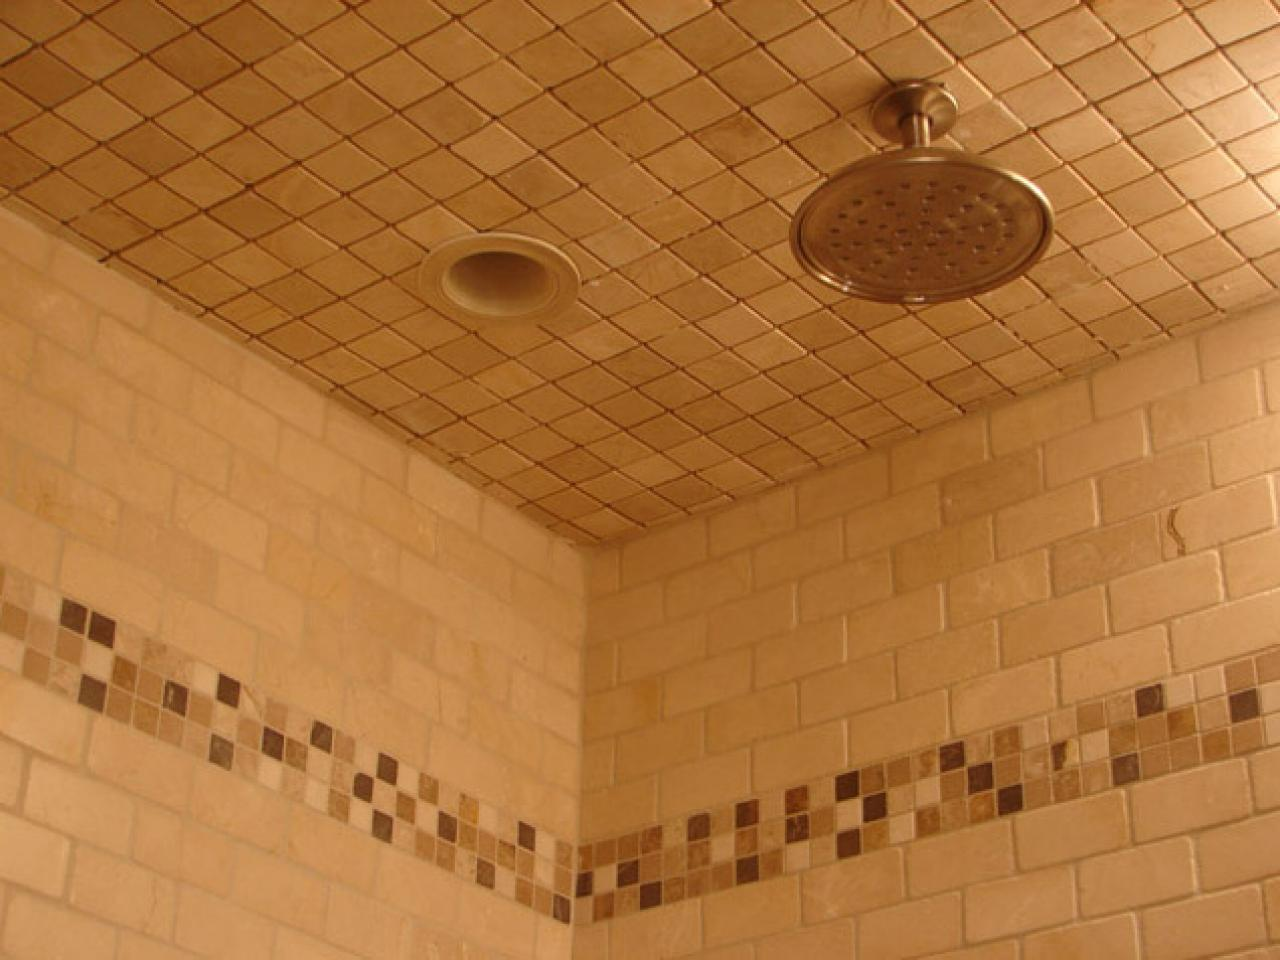 Diy bathroom tile - Droc313_4fy_showerhead04